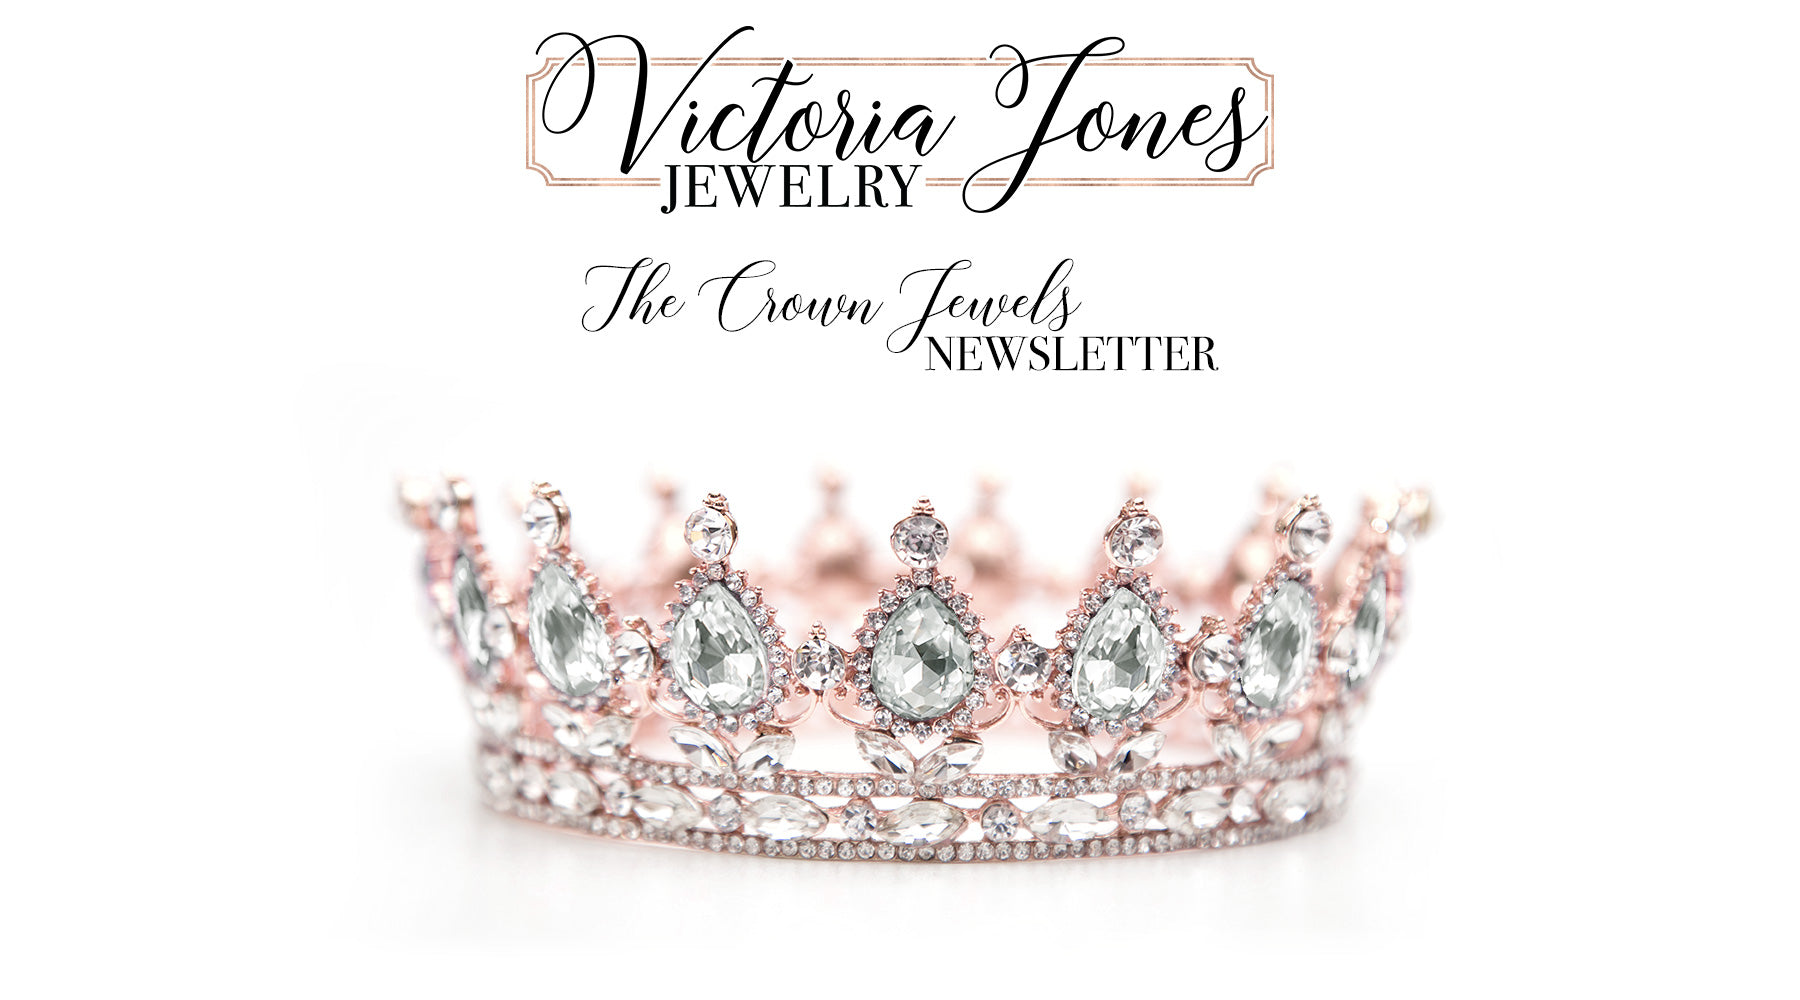 The Crown Jewels Newsletter by Victoria Jones Jewelry